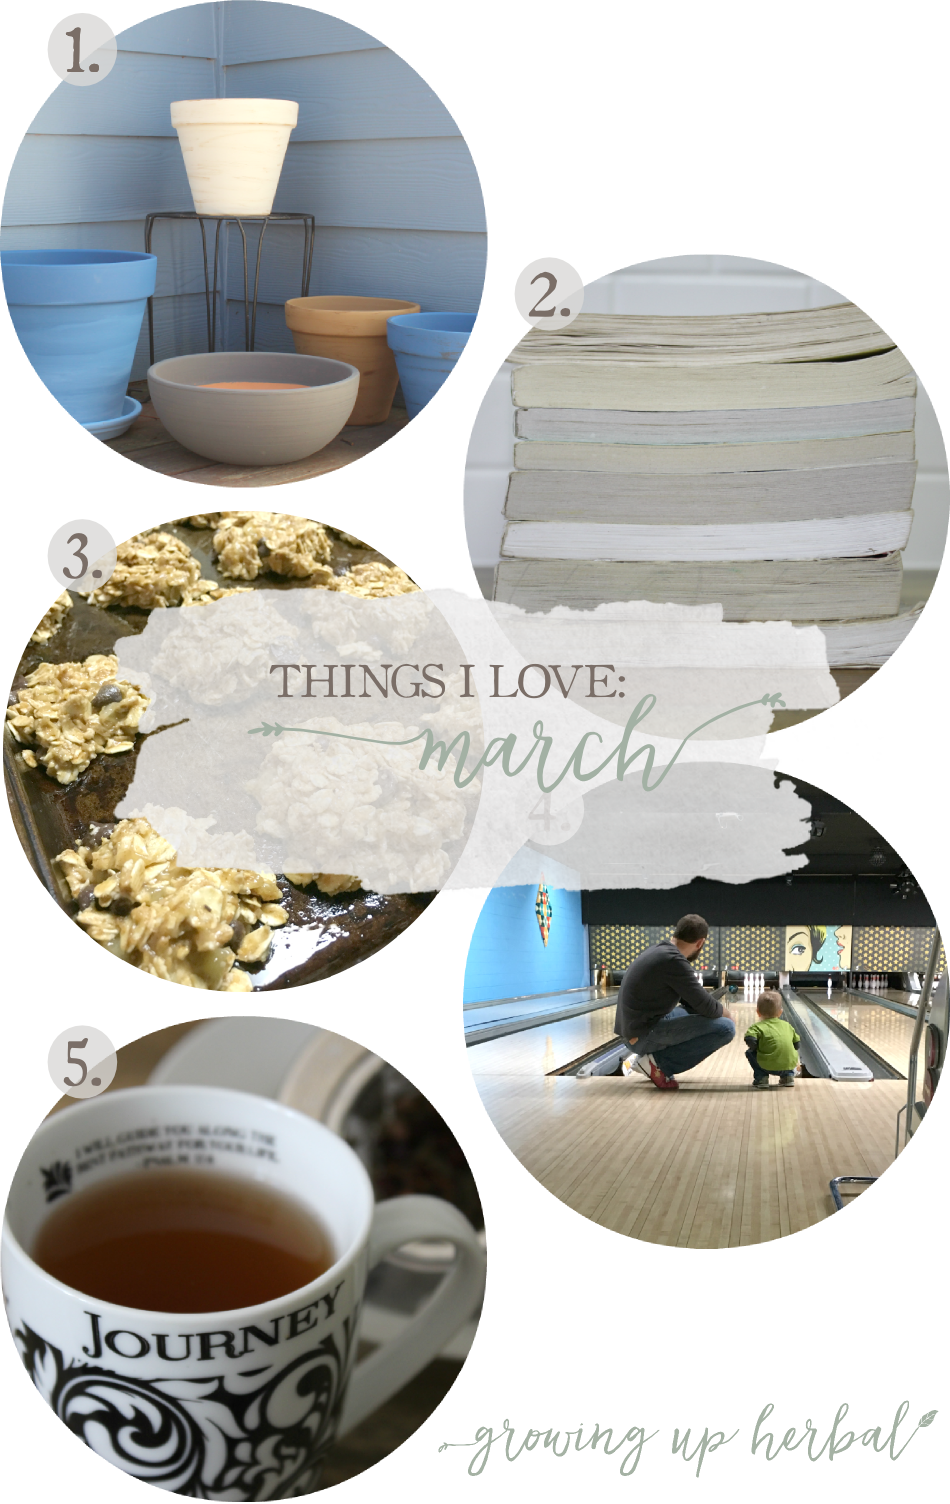 Things I Love: March 2017 | Growing Up Herbal | Some things I loved in March were an herbal tea for healthy veins, starting my 2017 reading challenge, celebrating St. Patrick's Day, healthy breakfast cookies, and painting planters for spring plants! Come check it out!